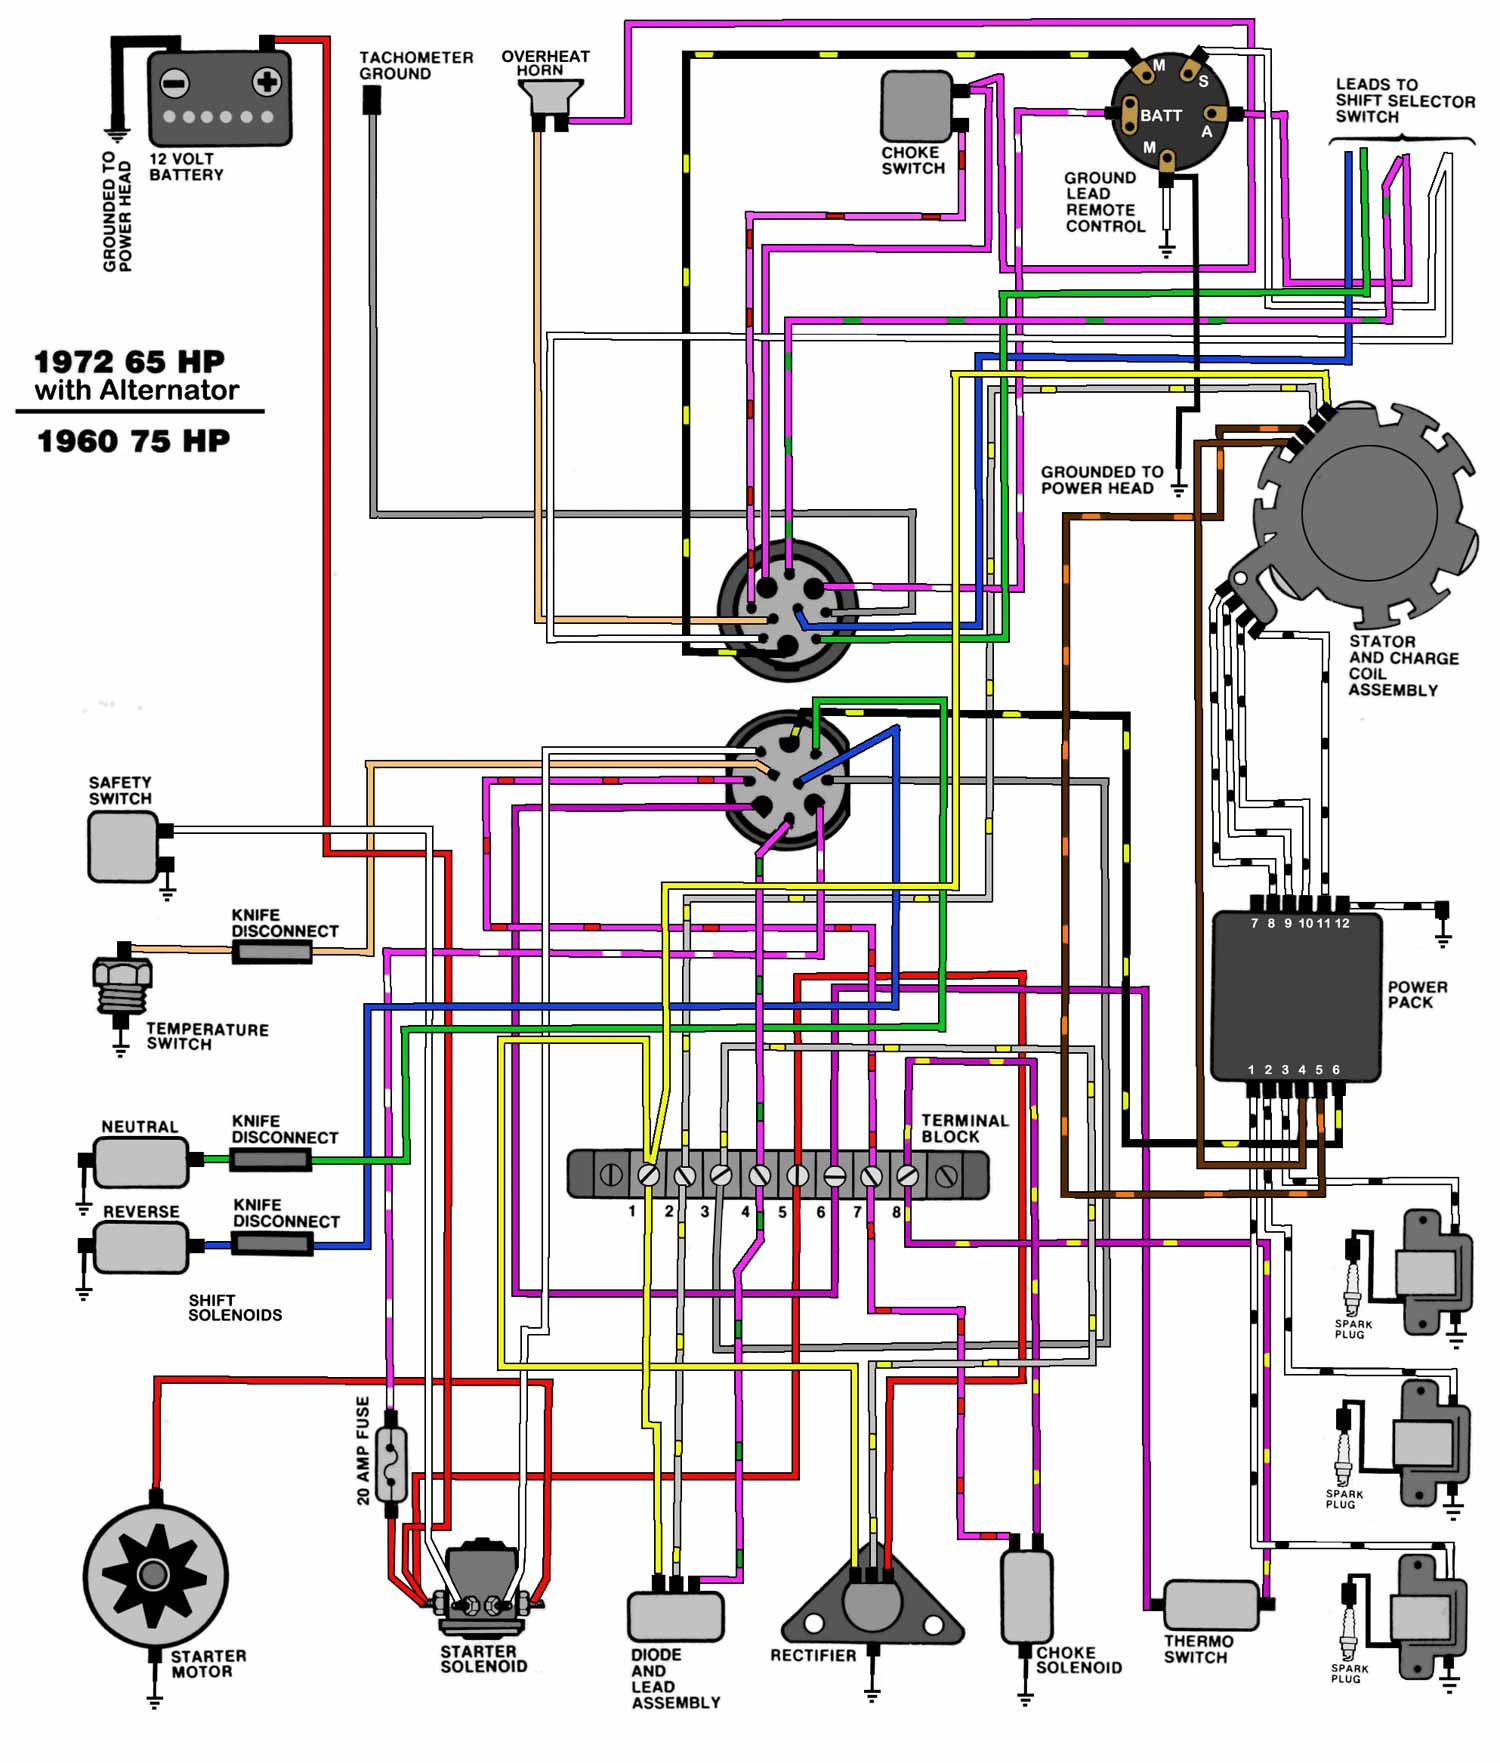 hight resolution of evinrude johnson outboard wiring diagrams mastertech marine johnson 9 9 outboard wiring diagram johnson outboard wiring diagram